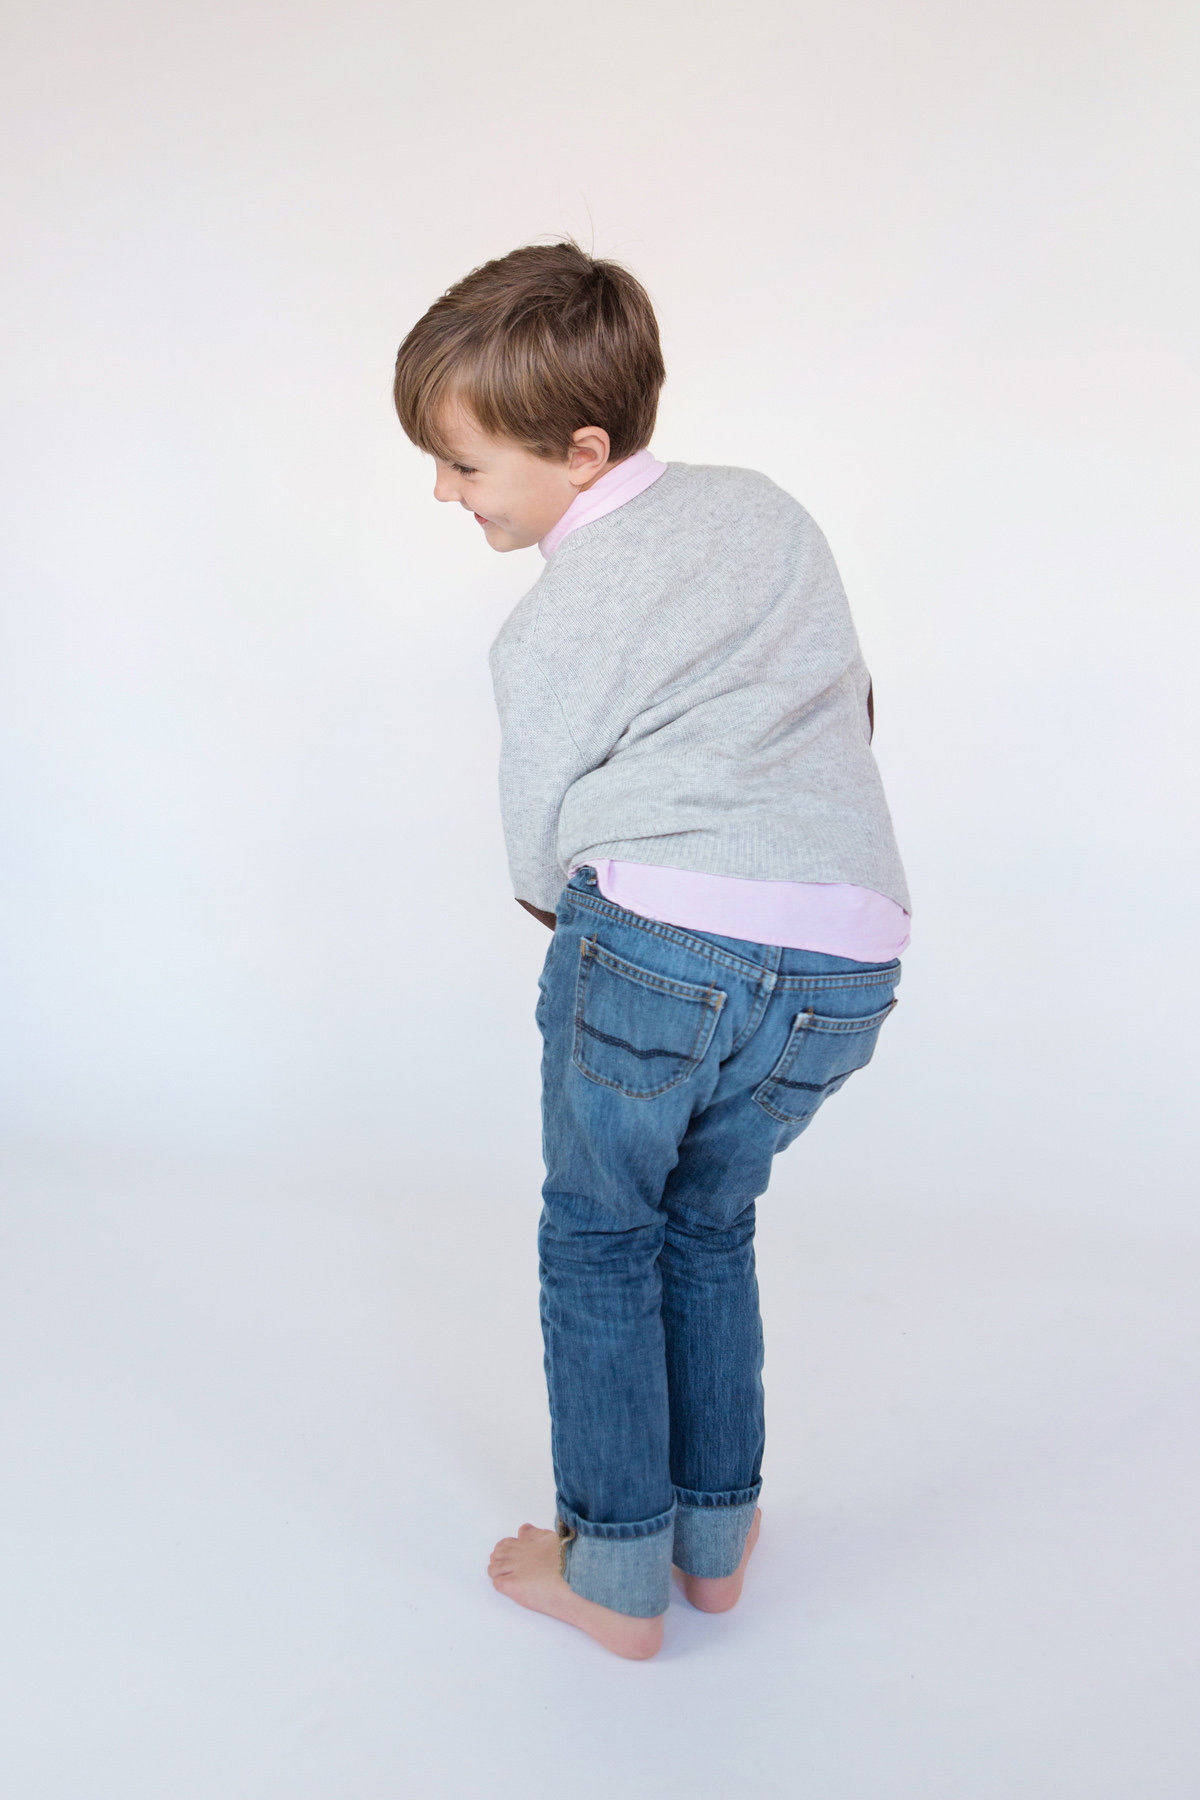 studio-child-photographer-st-louis-34Meek-49_10172015